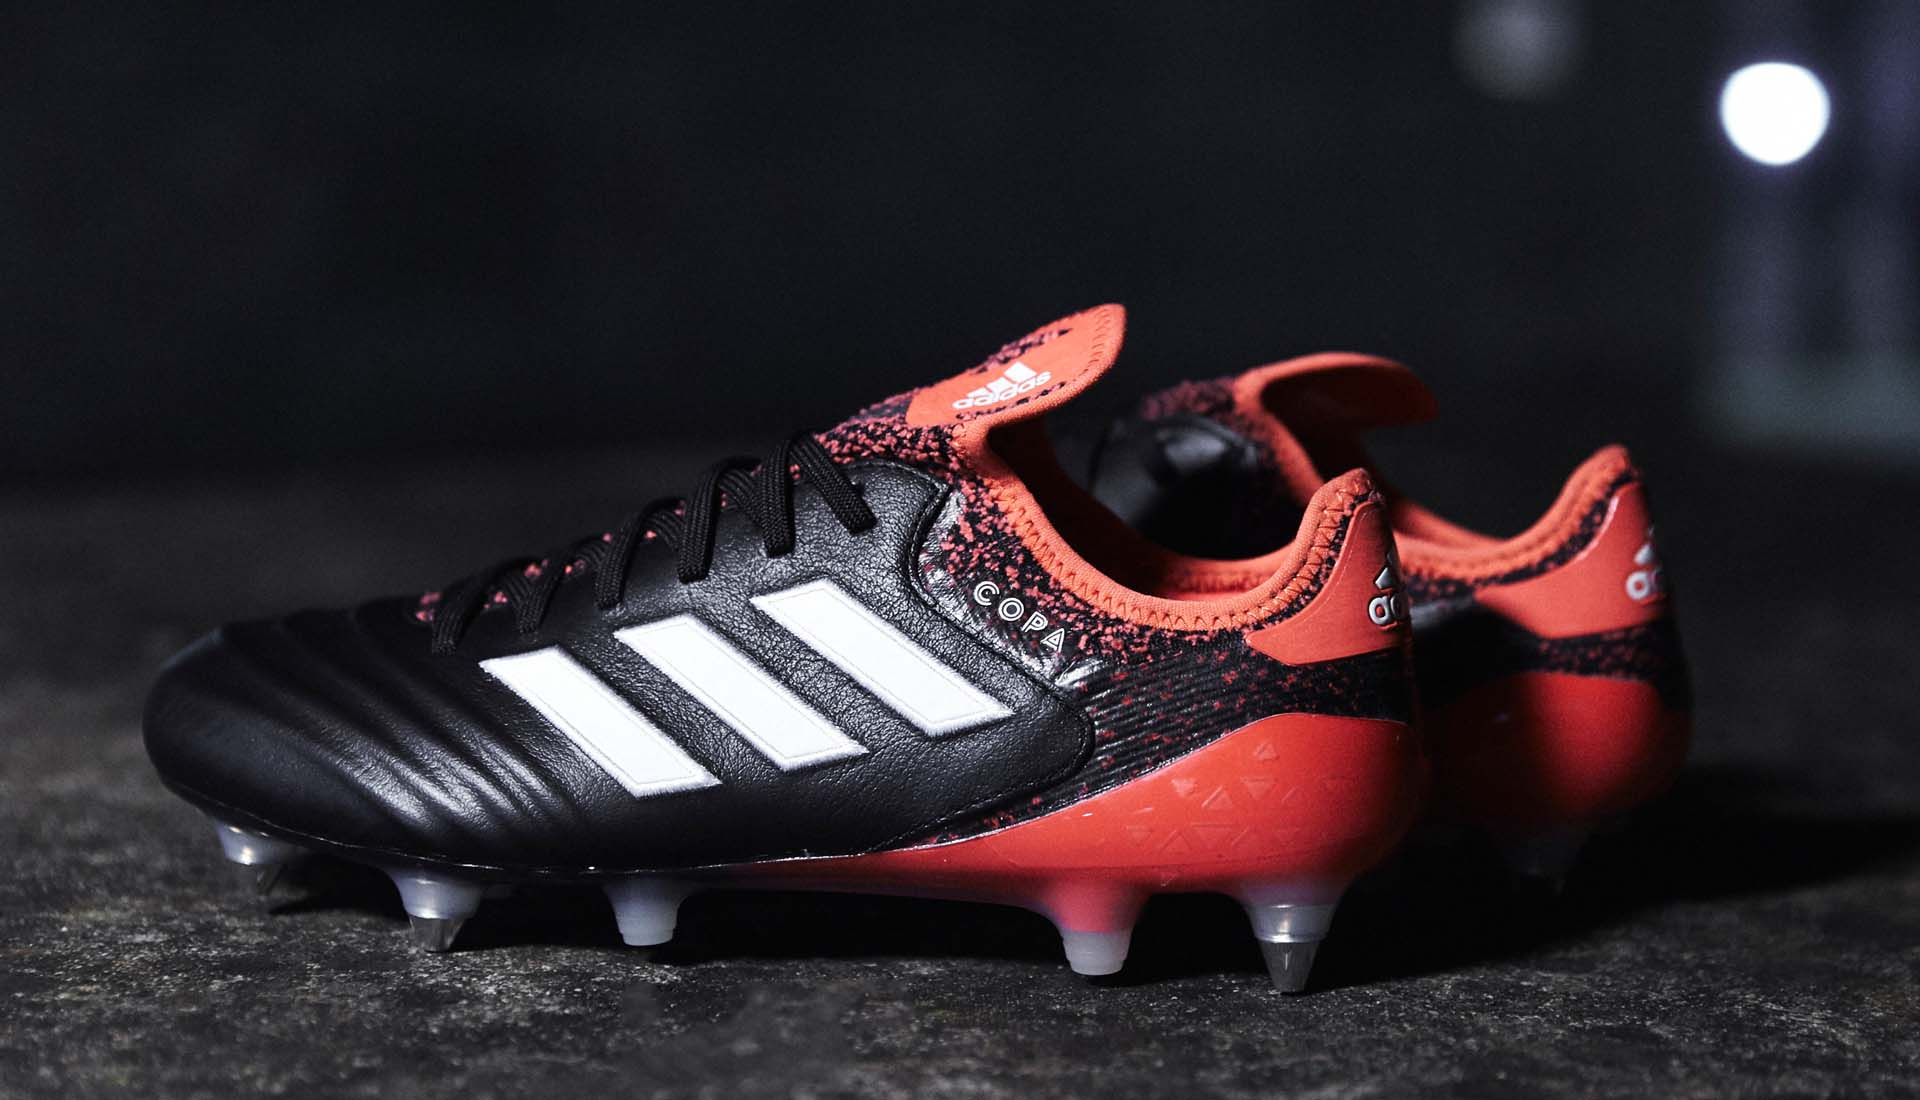 adidas Launch the Copa 18.1